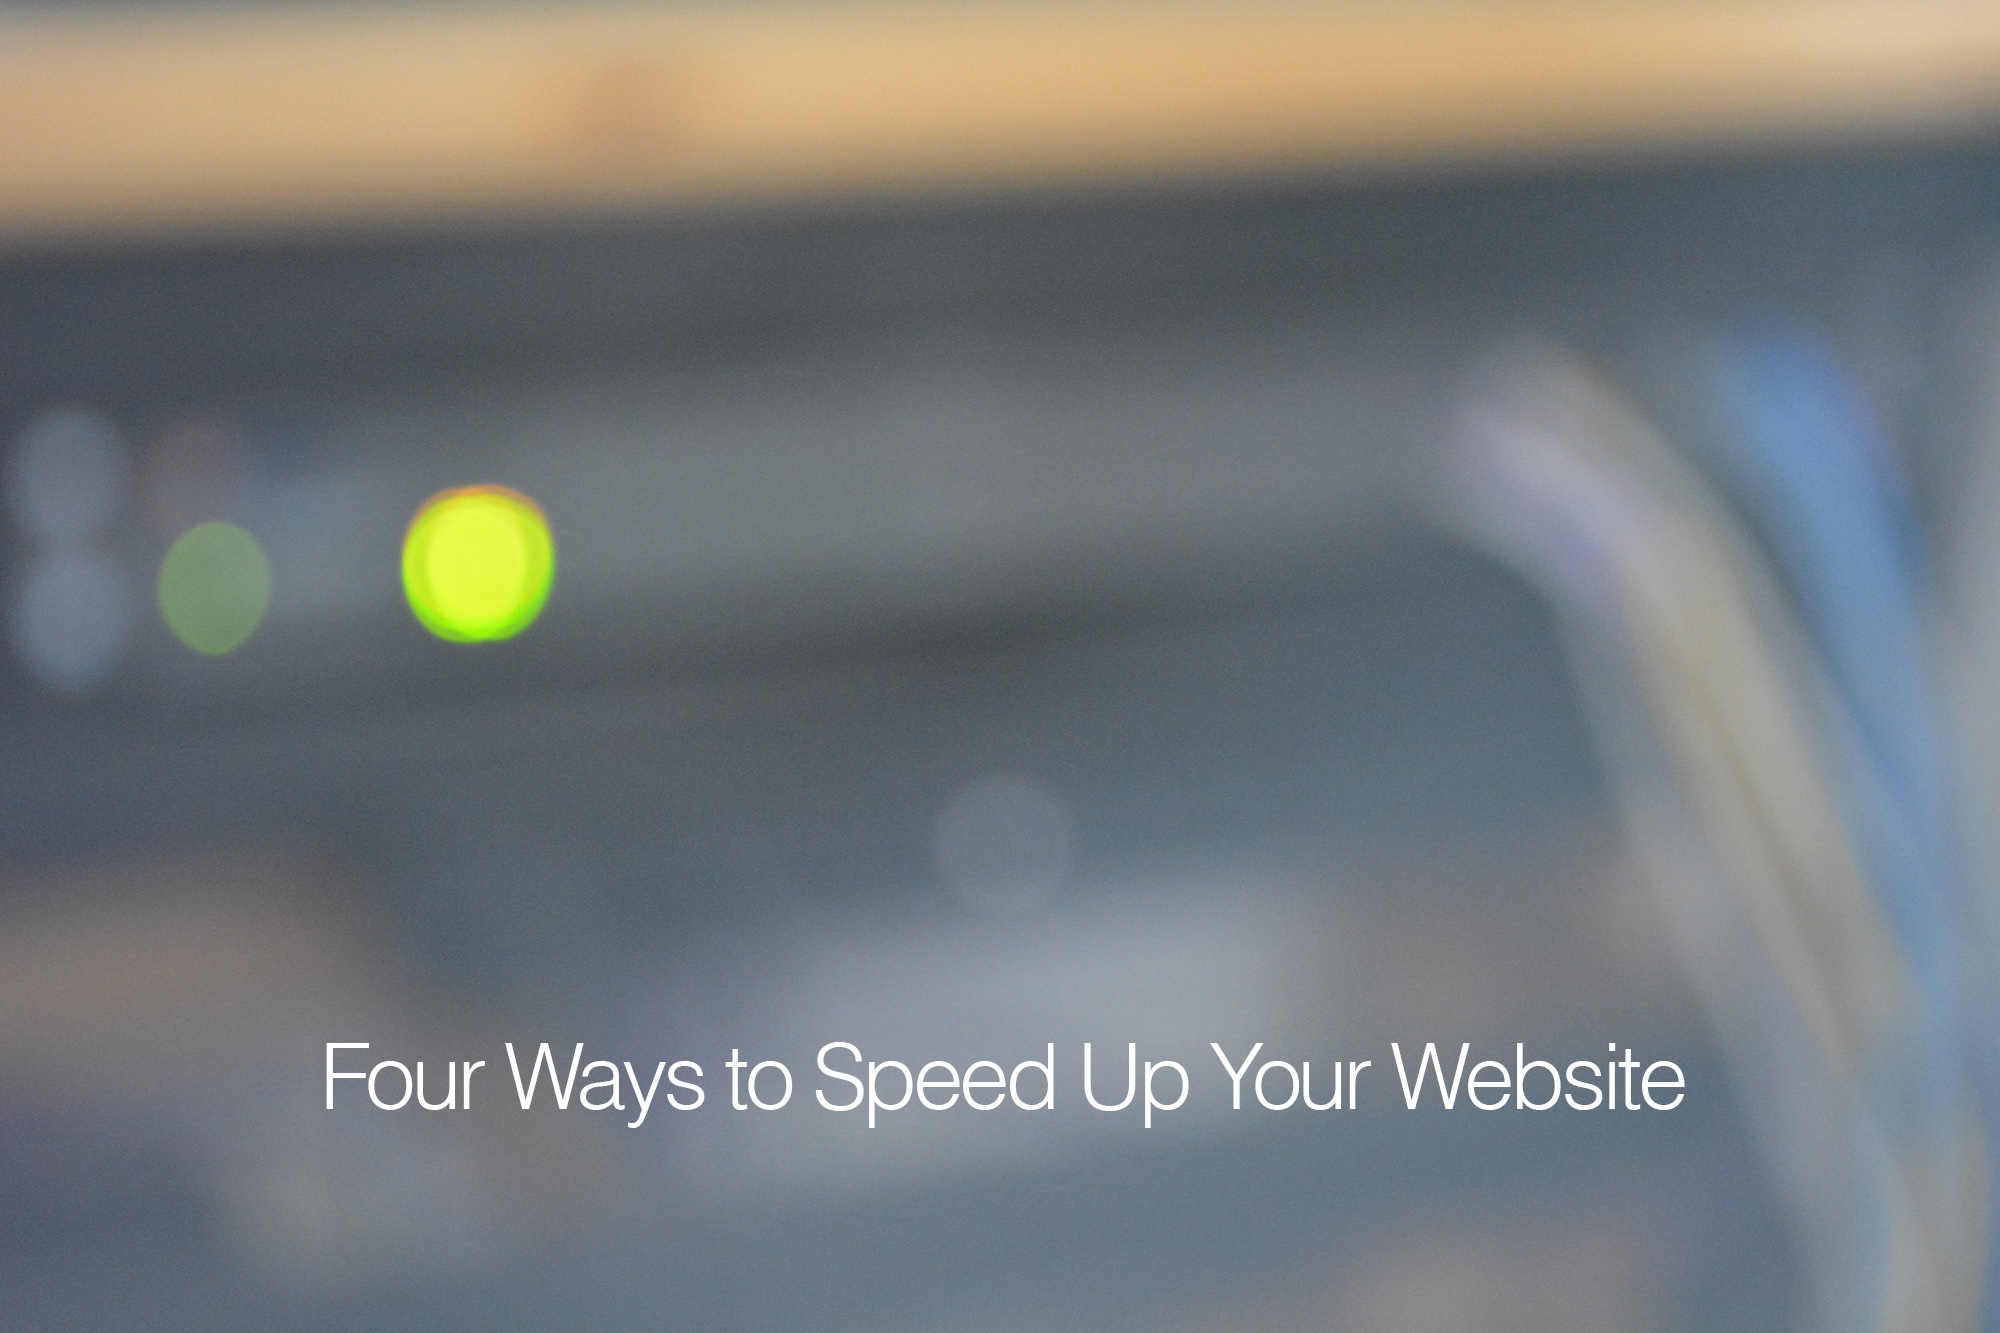 Four Ways to Speed Up Your Website